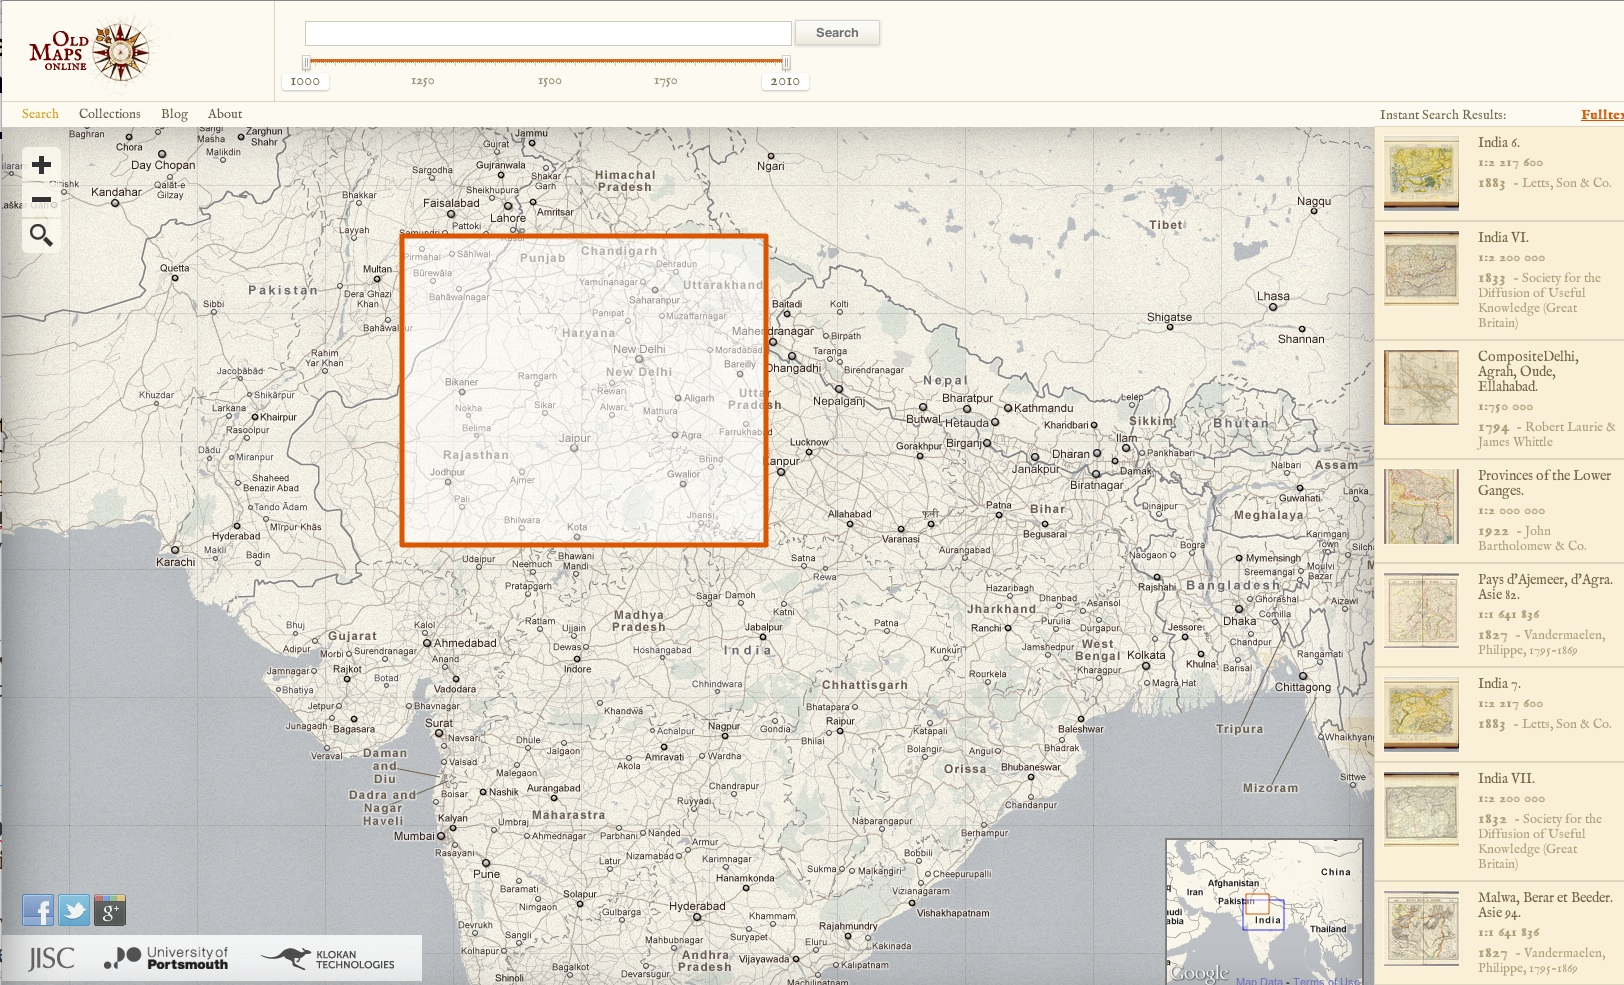 Old Maps Online Yet Another Cartographic TreasureTrove GeoCurrents - Buy old maps online